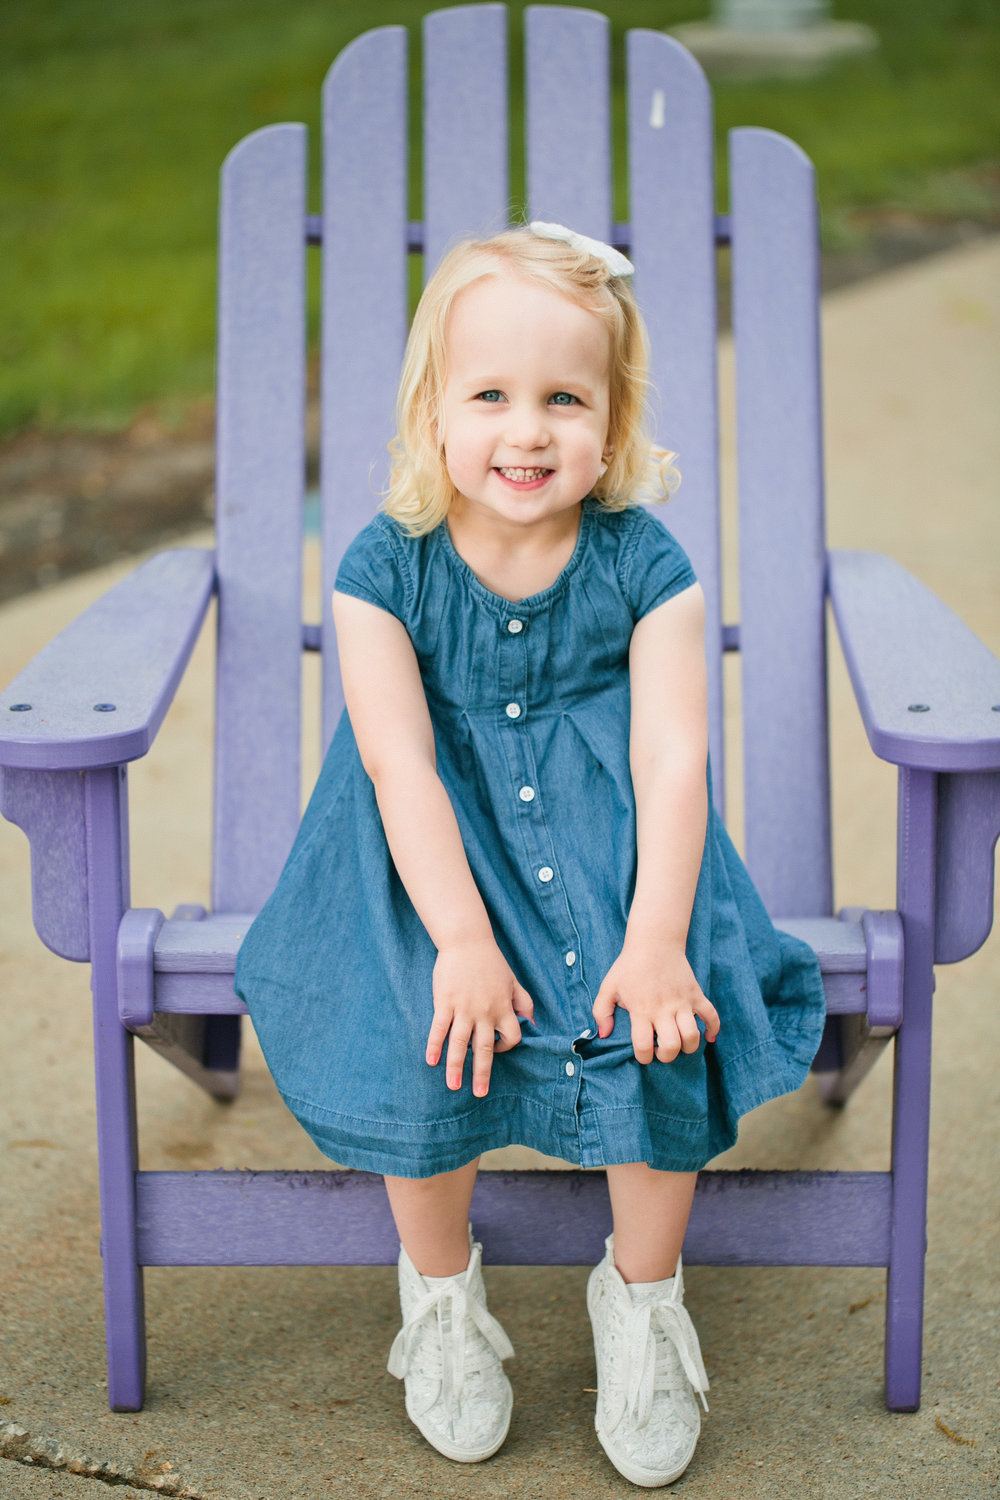 Amelia Sutton is an Ankeny/ Des Moines Iowa area  photographer specializing in  newborn , baby, maternity, child, senior & family photography .